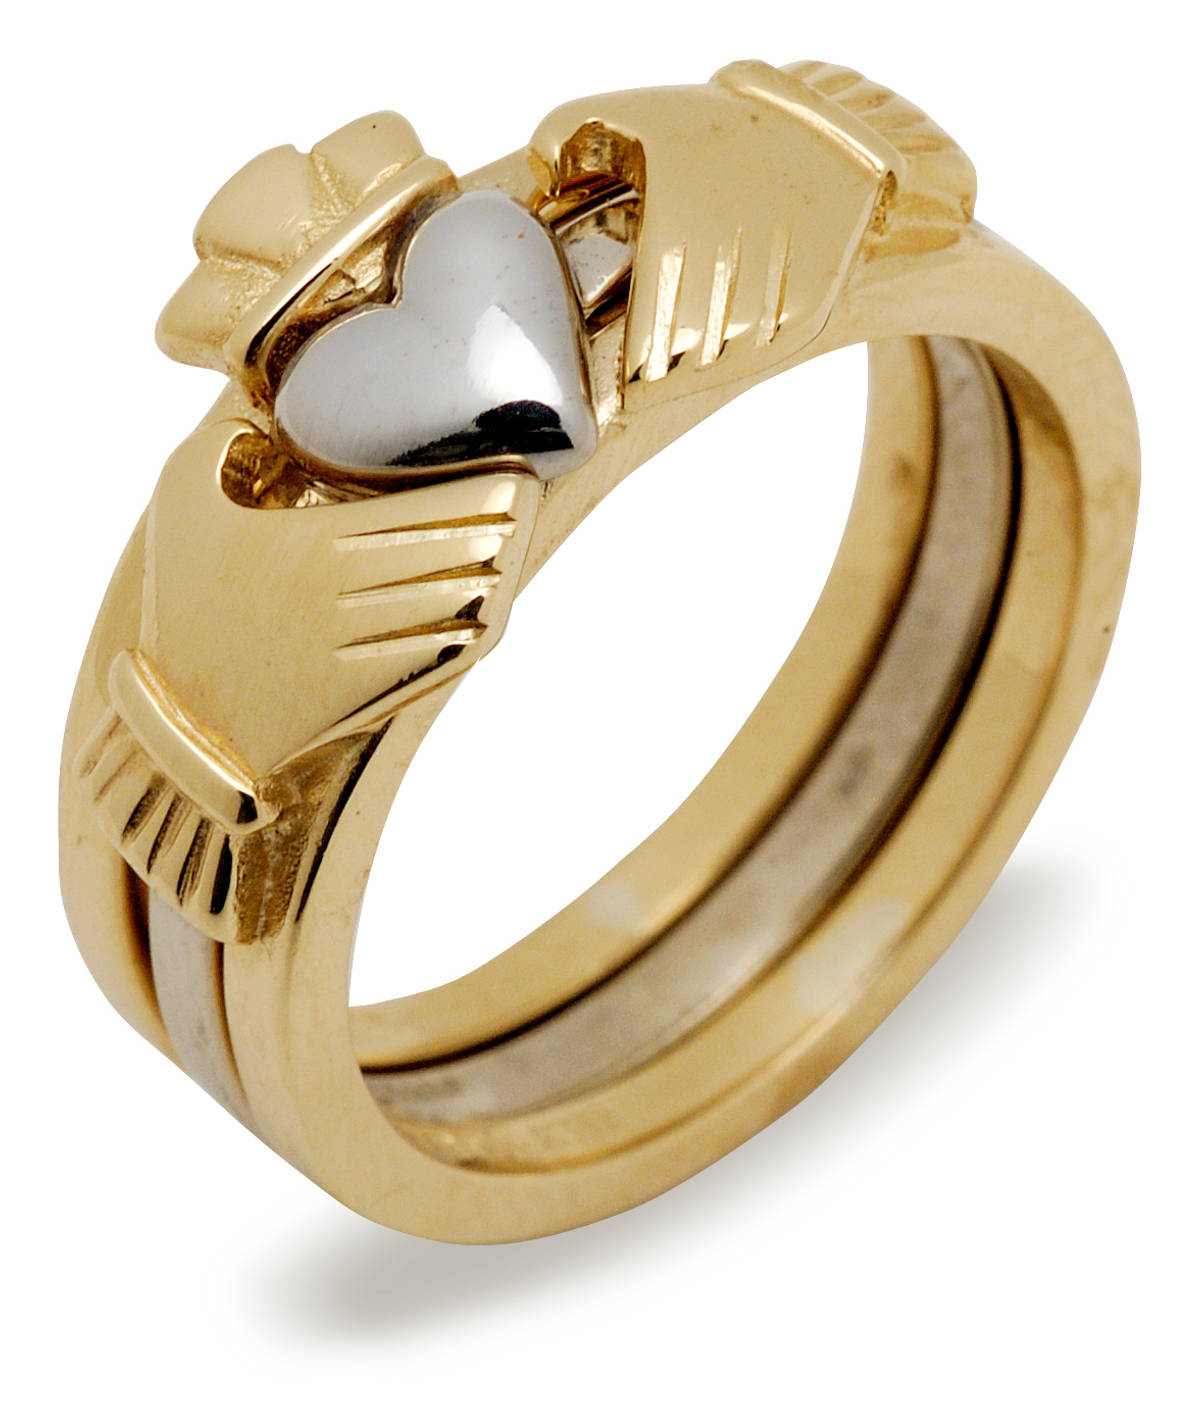 10 ct gold 2/3-part Claddagh rings set